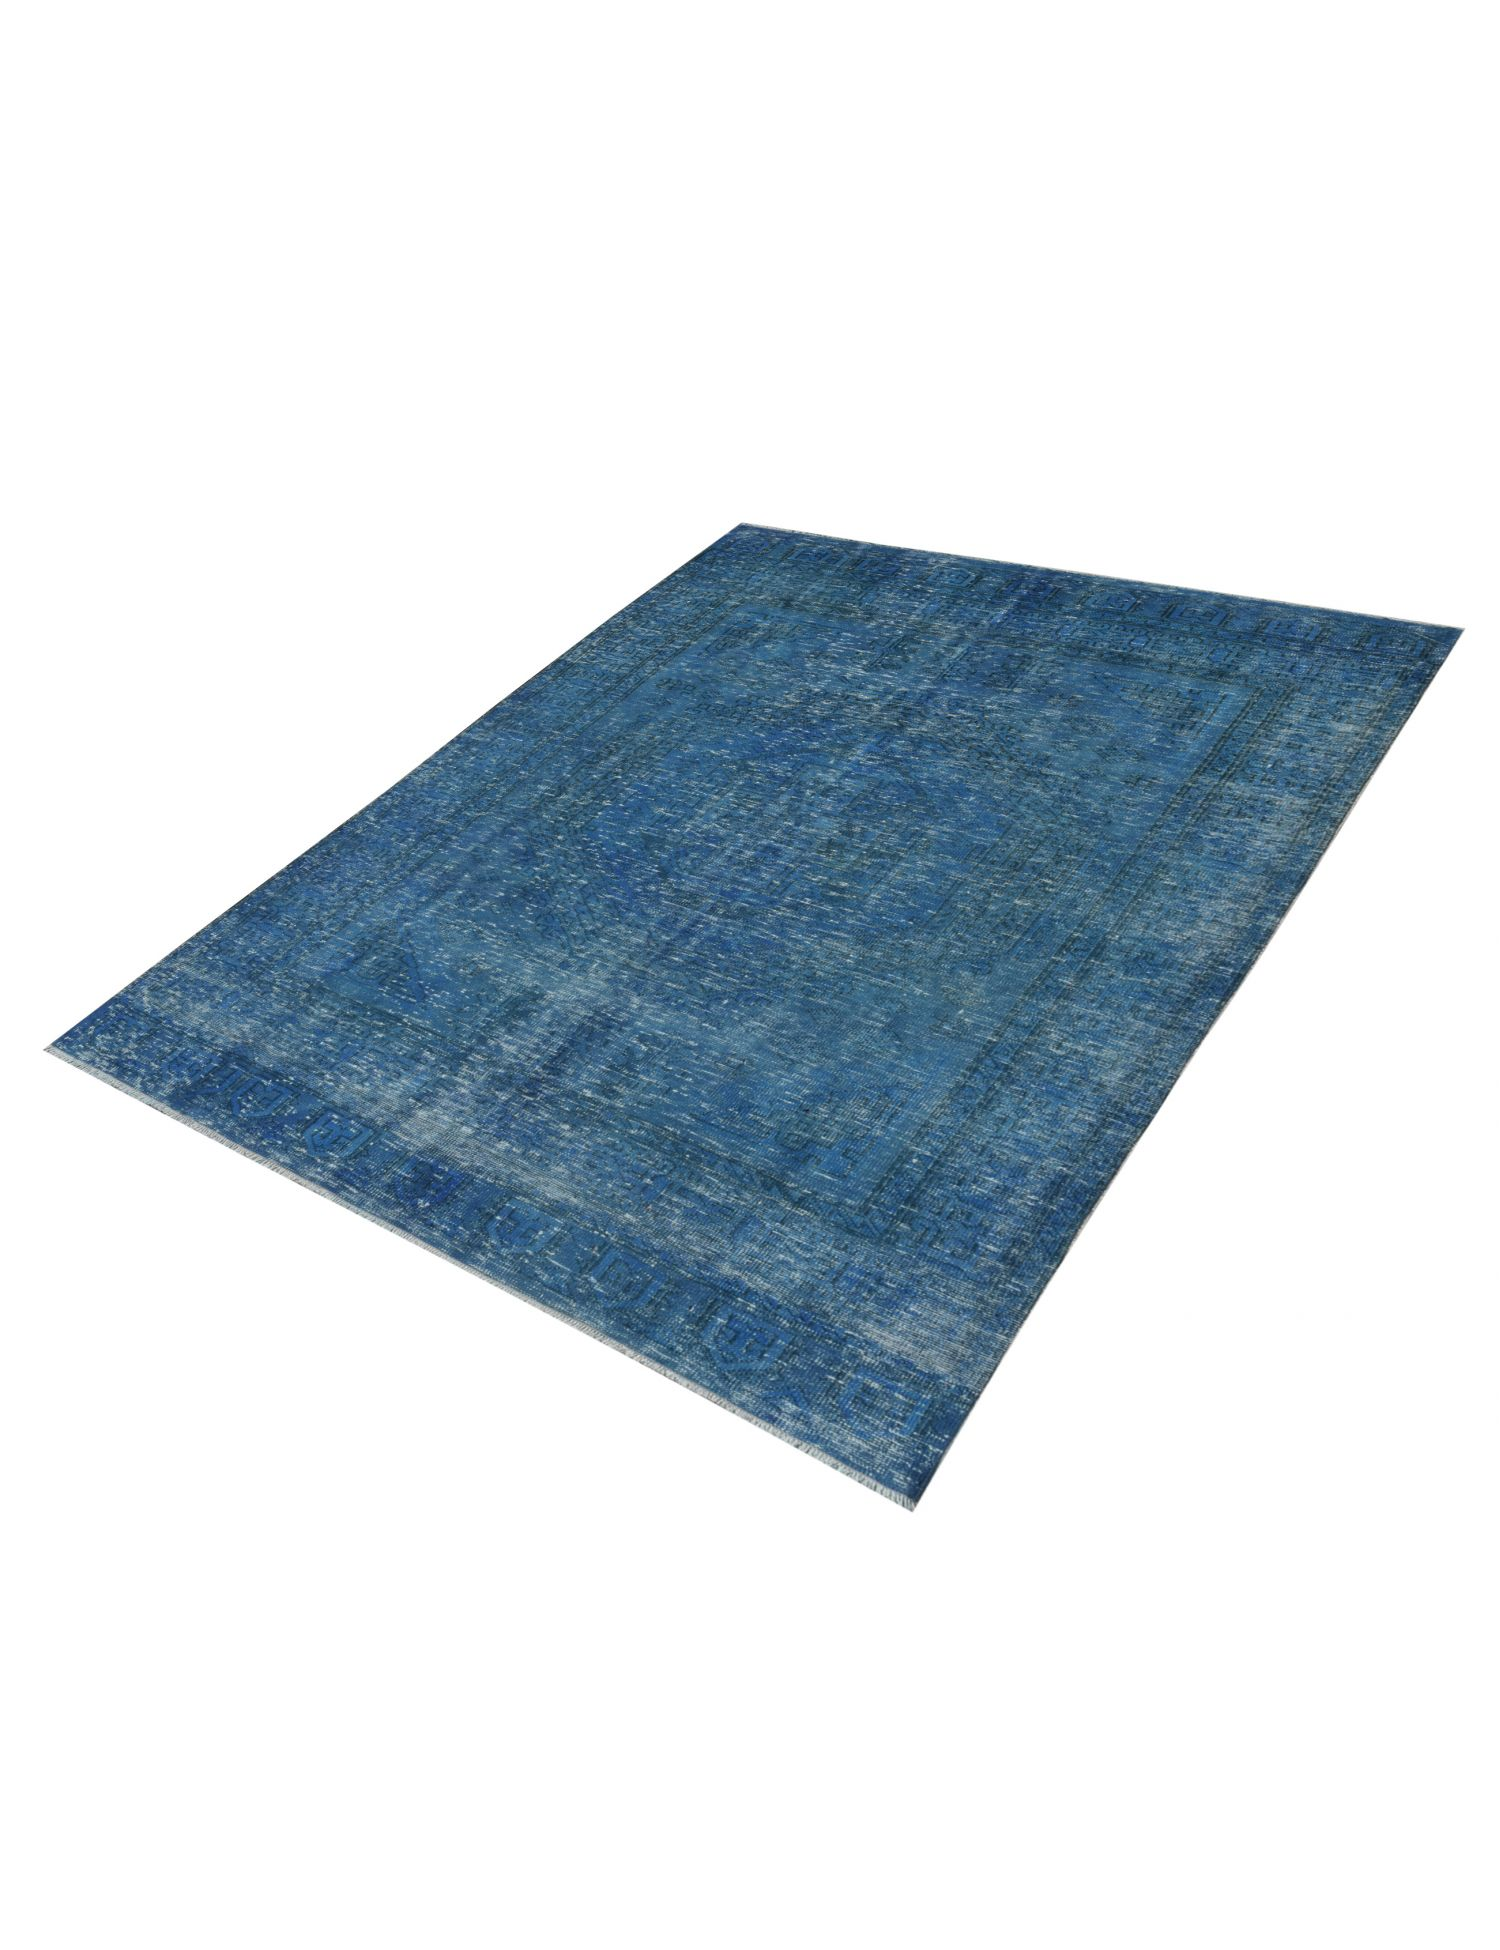 Vintage Carpet  blue <br/>270 x 194 cm